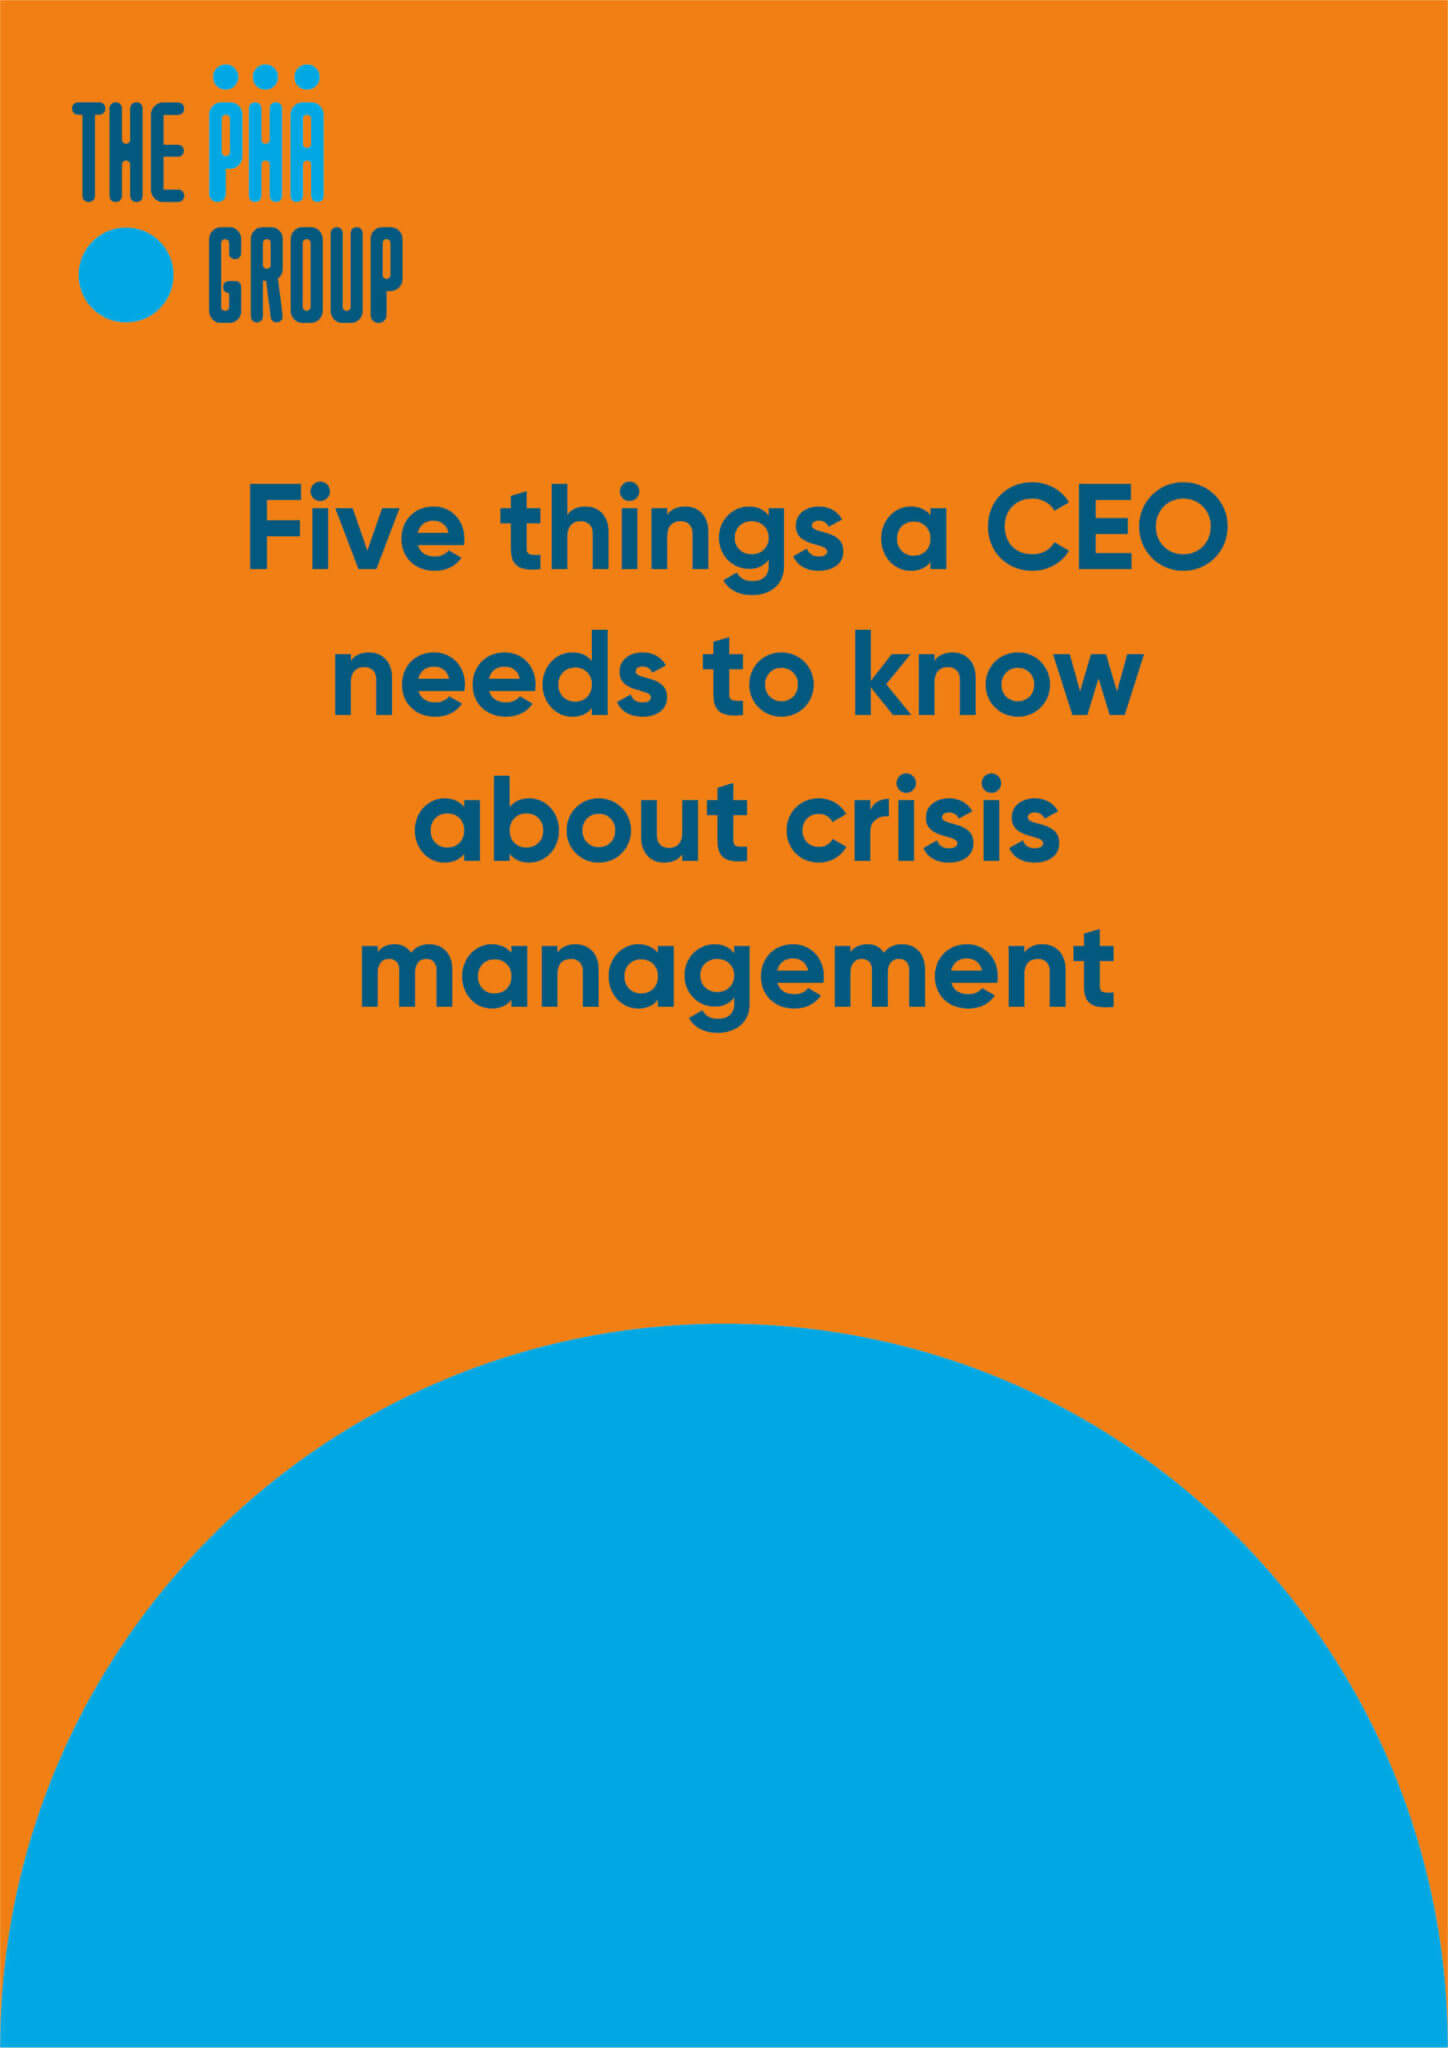 Five things a CEO needs to know about crisis management